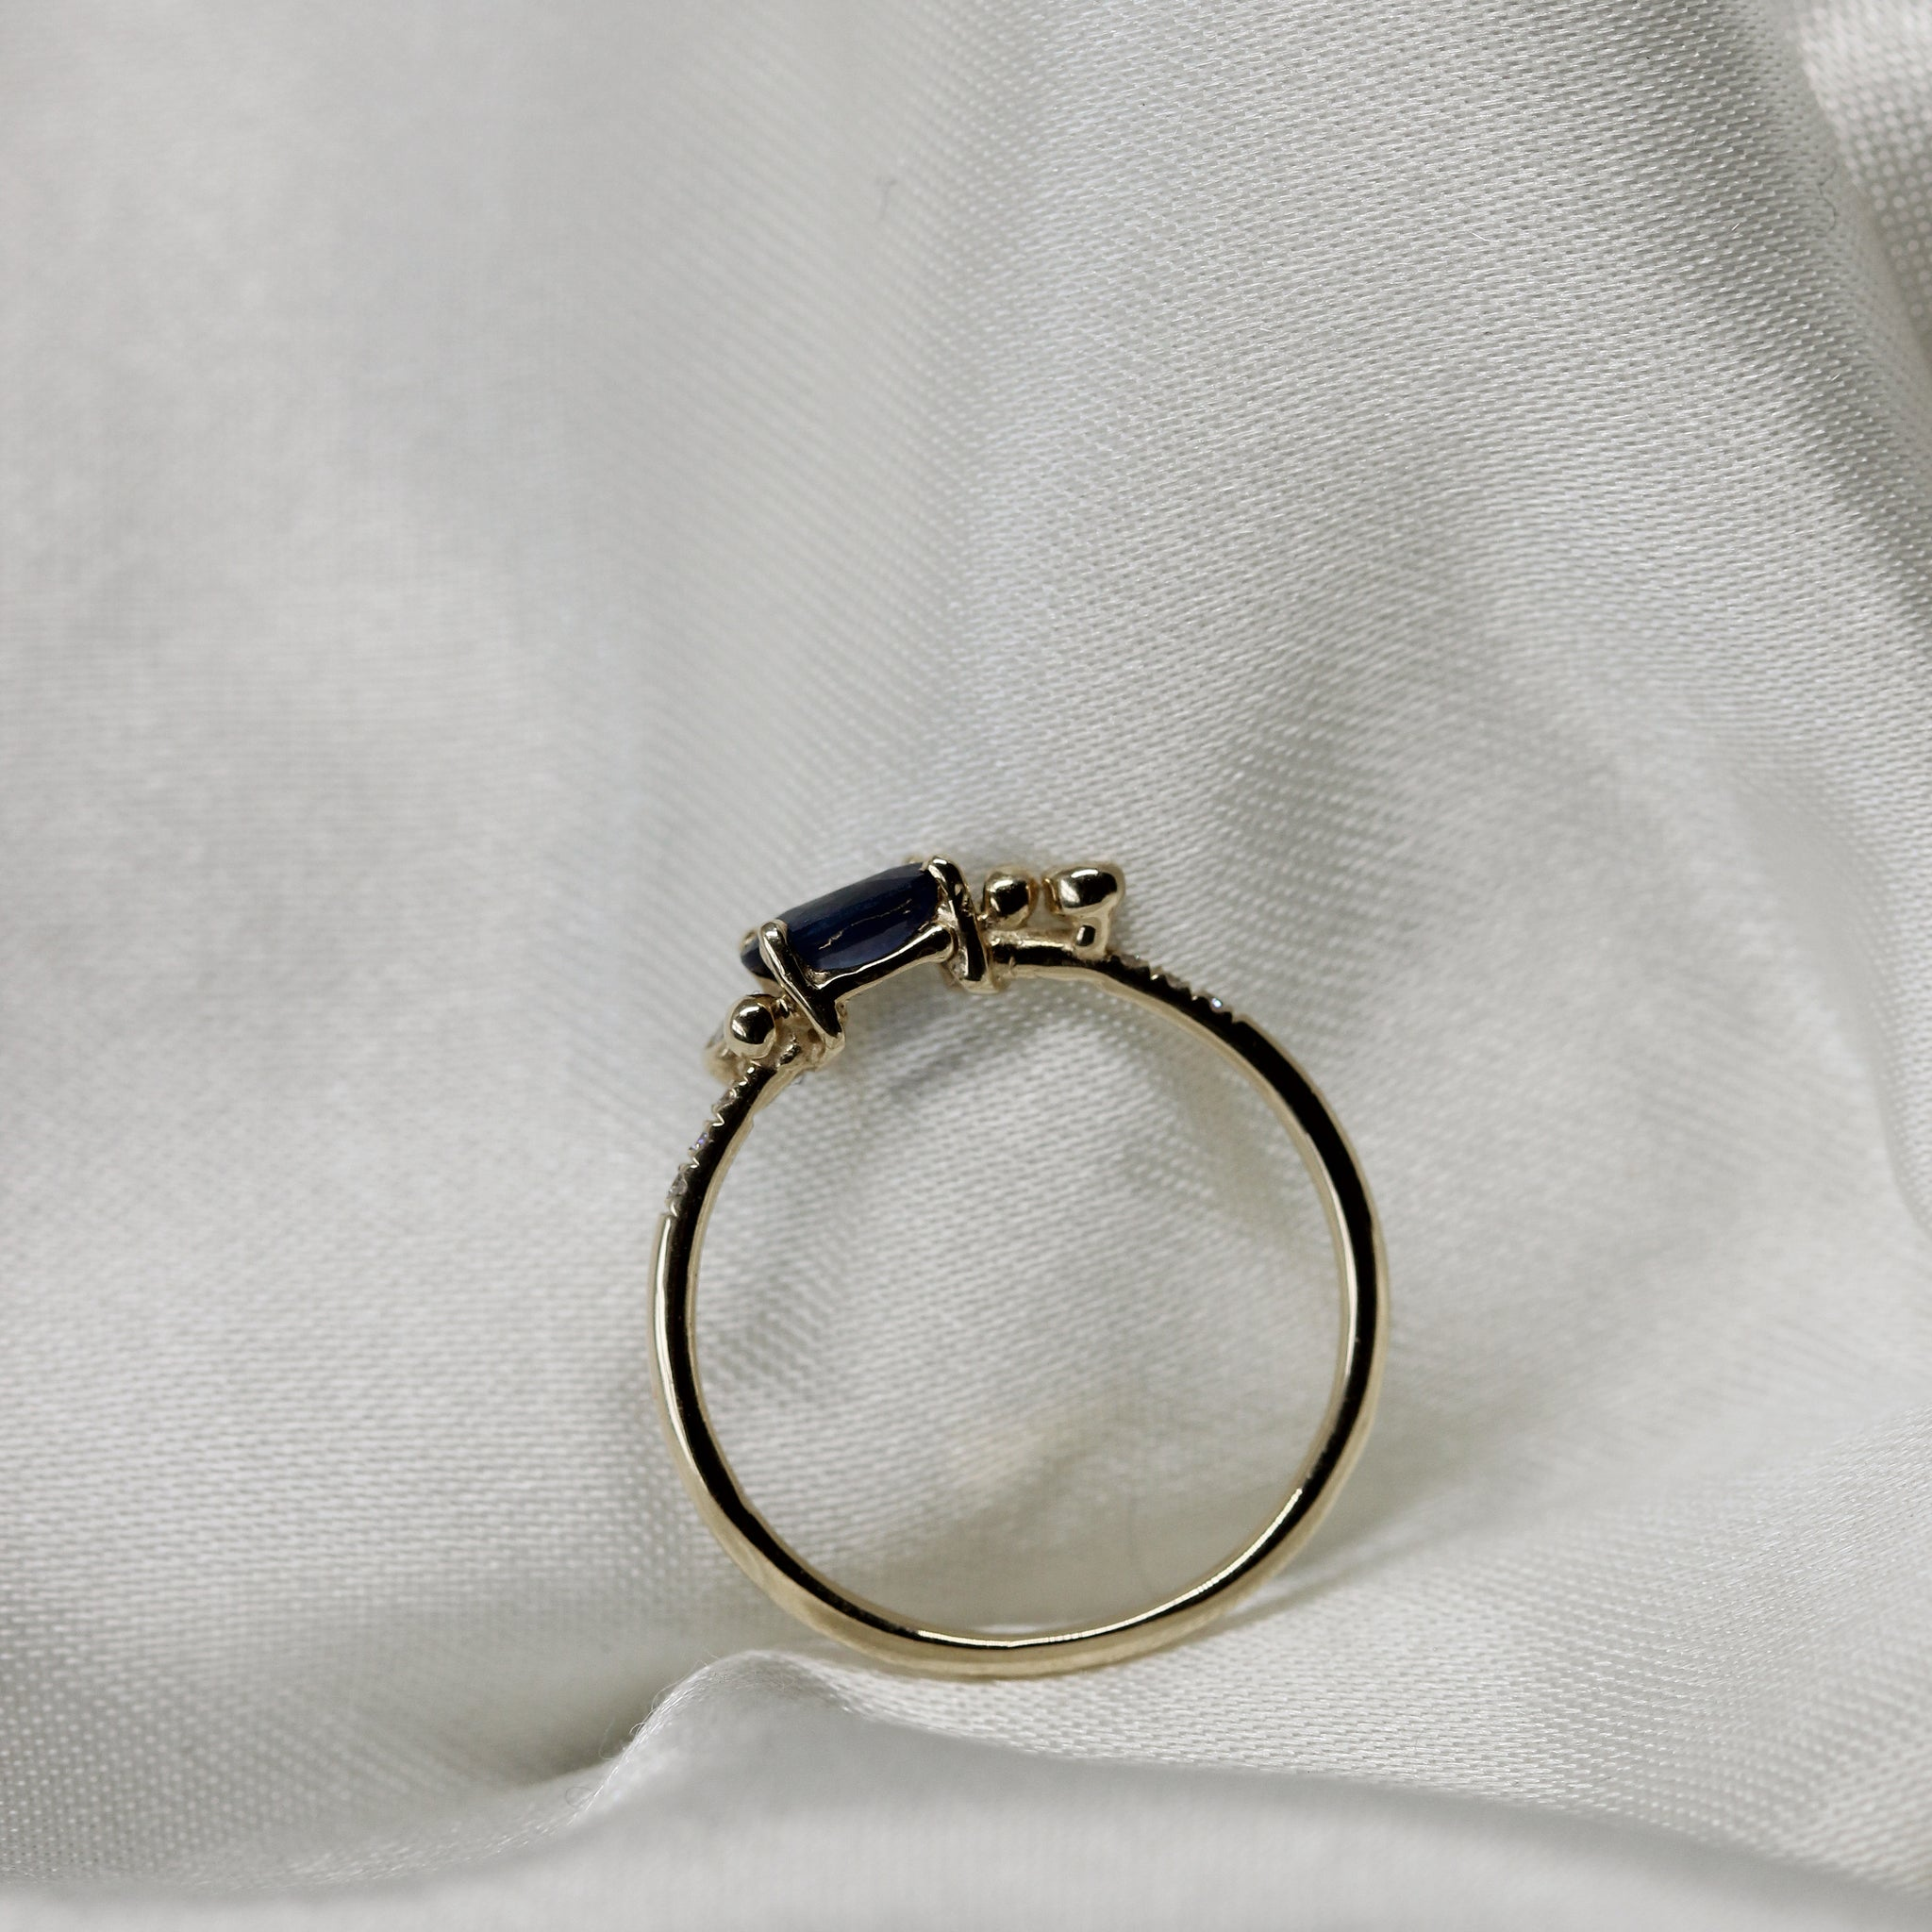 2 3 4 // lovers twilight ring